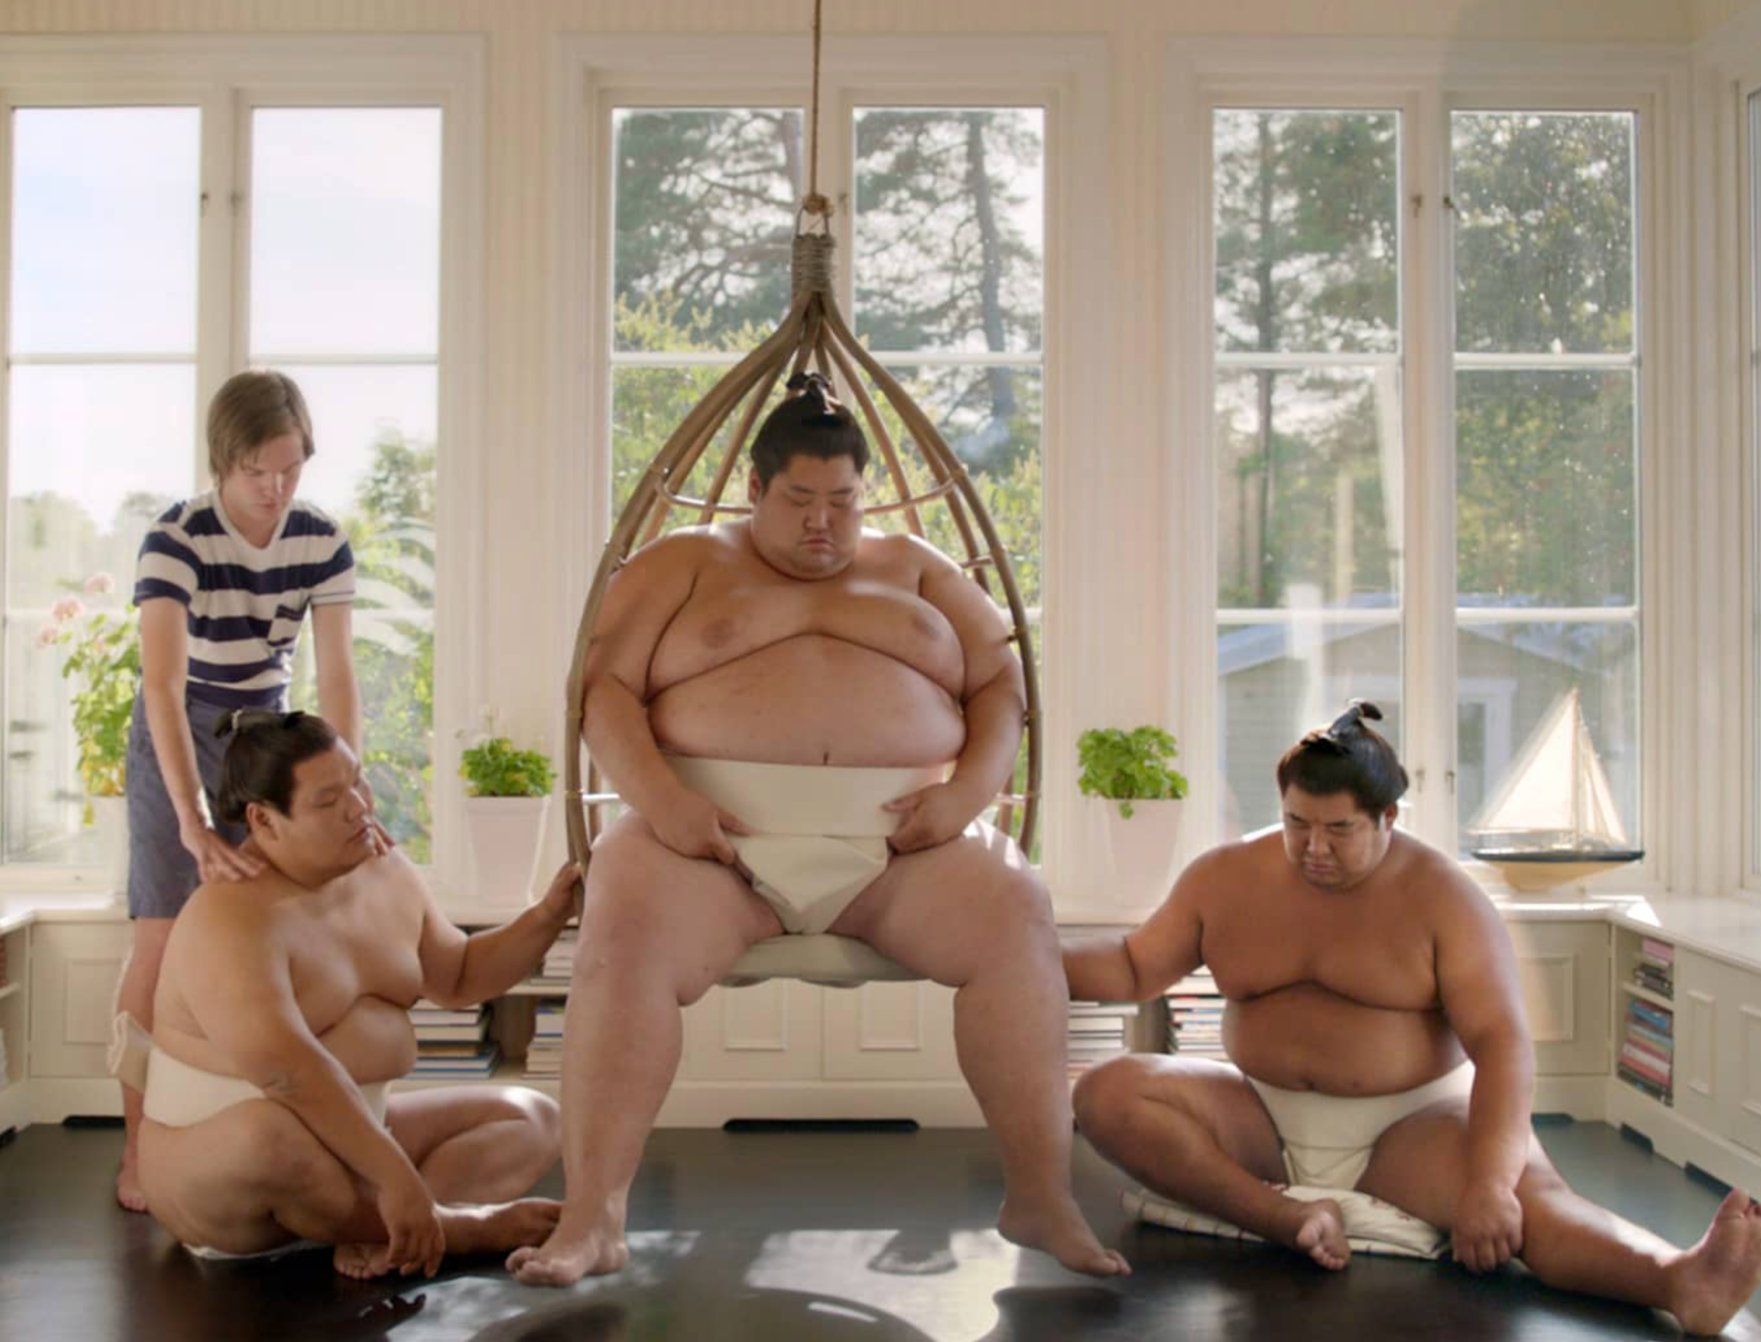 The Sumos - Probably the world's heaviest and most powerful exchange students.